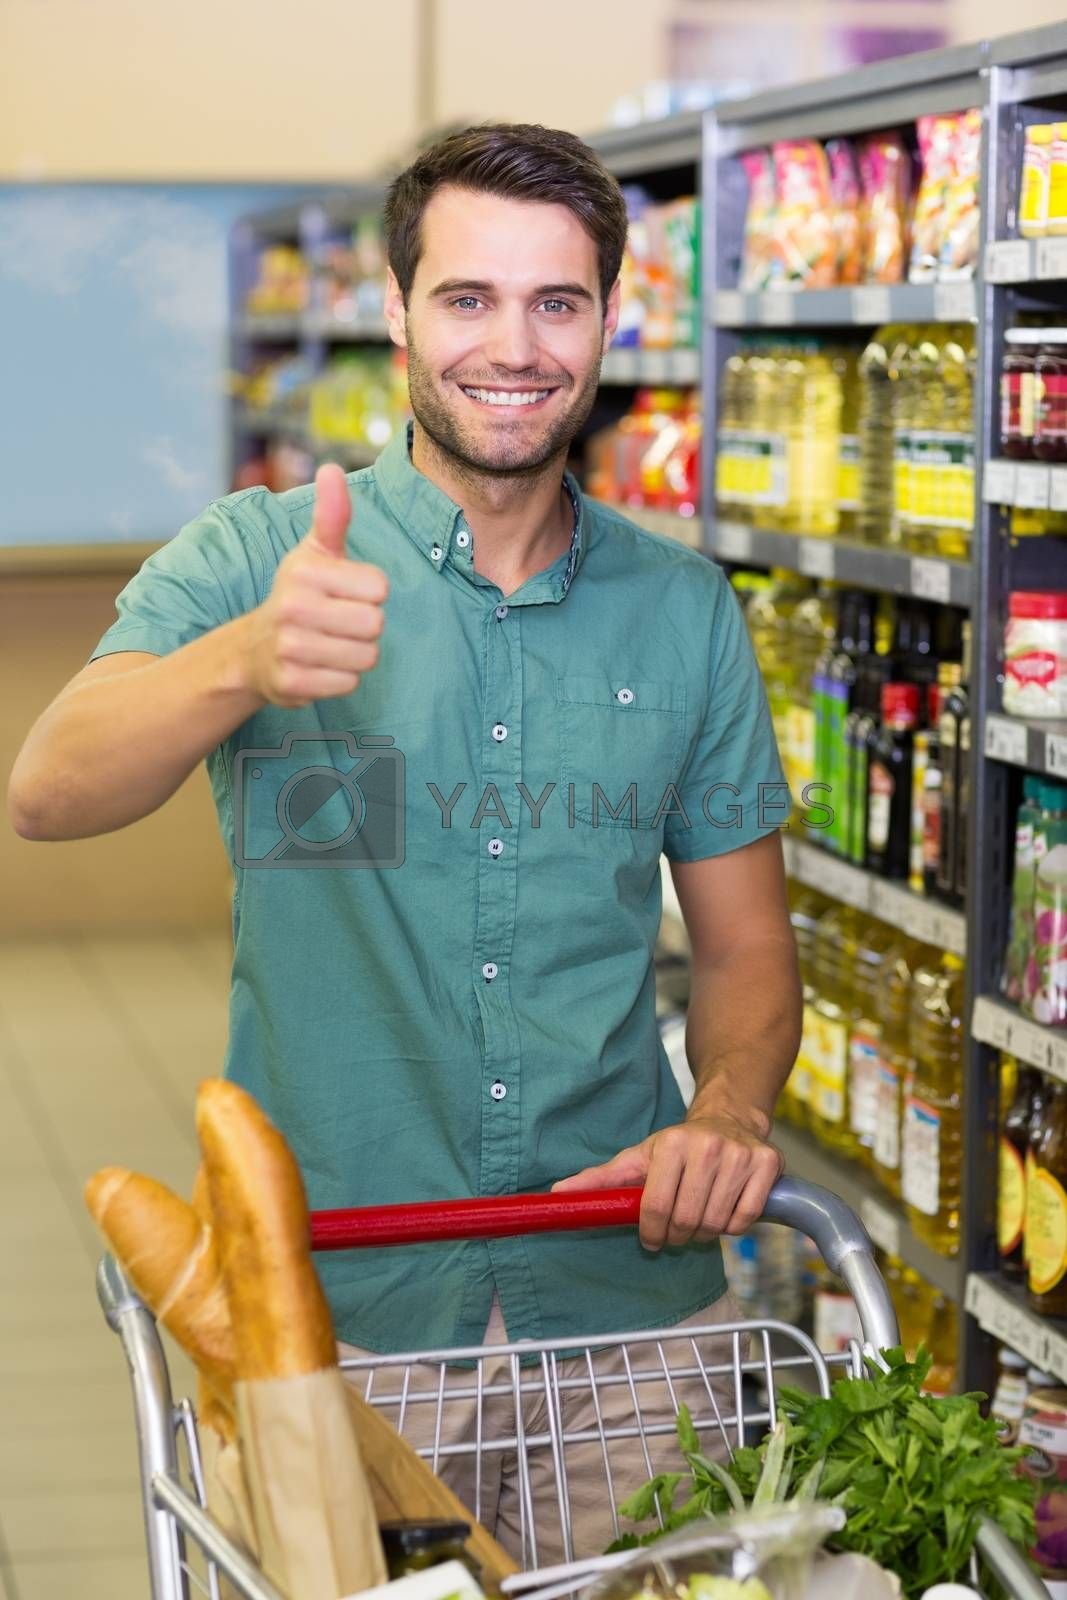 Royalty free image of Portrait of smiling man buy products with his trollet and thumb up  by Wavebreakmedia